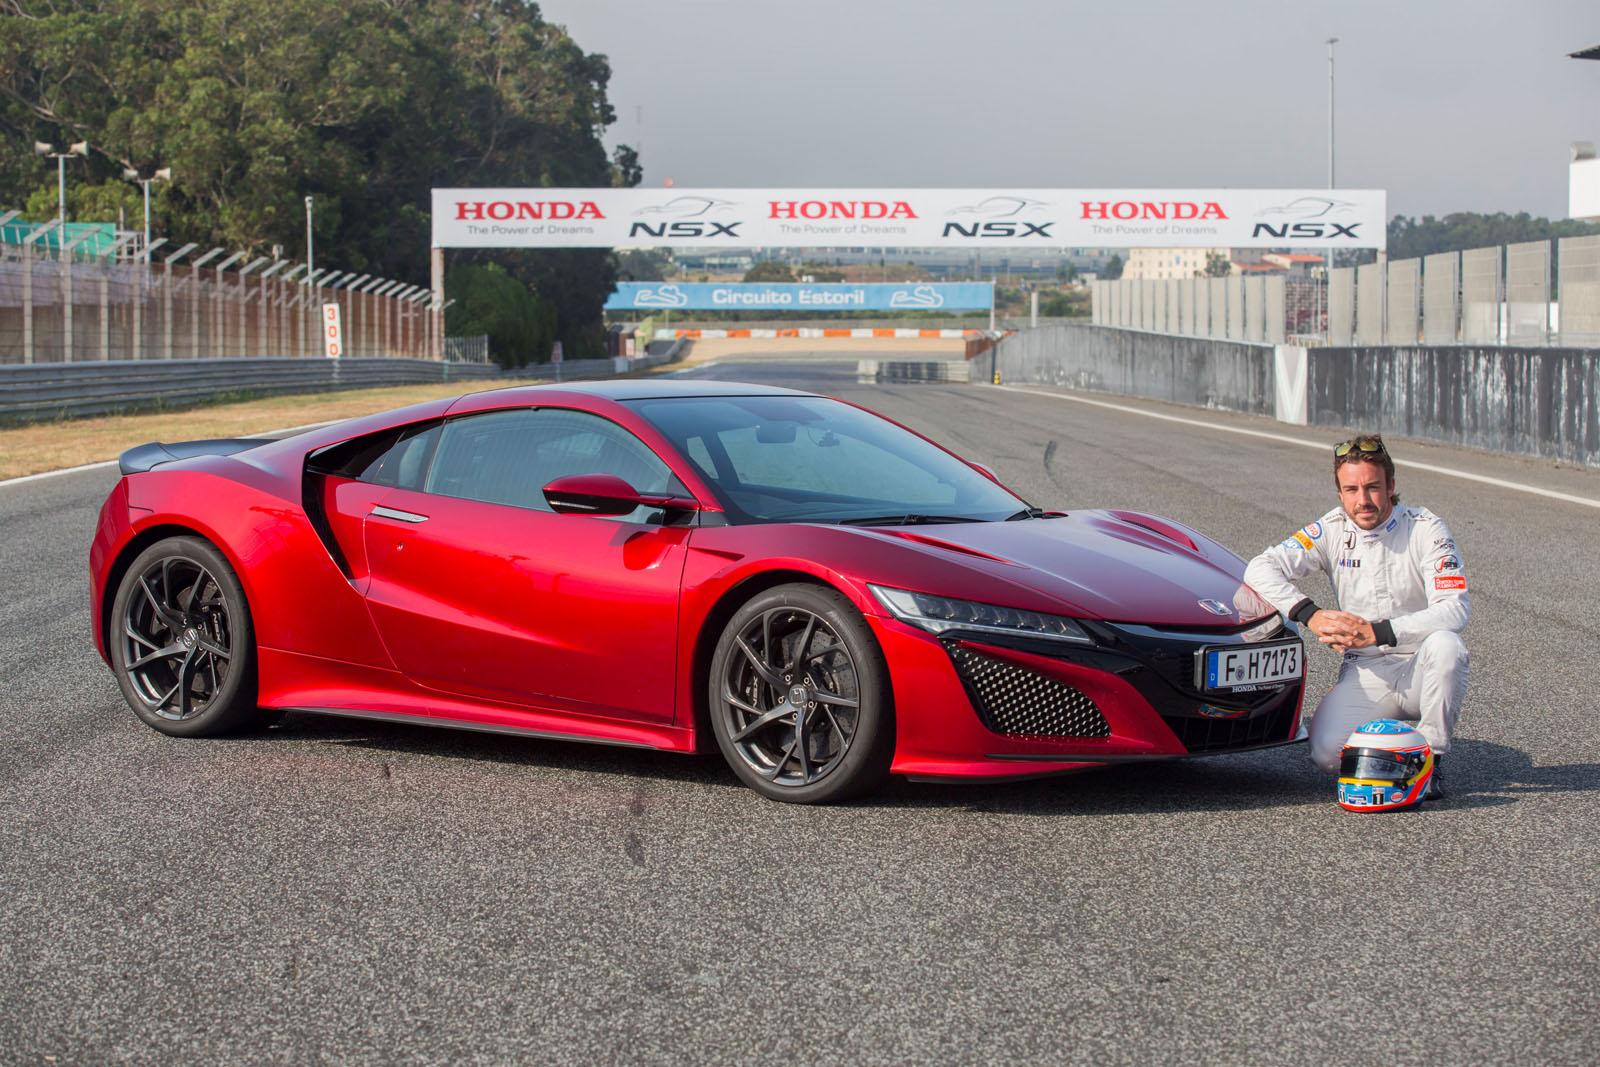 Takata Airbag >> Fernando Alonso Drives the 2017 Honda NSX, Digs the Brakes - autoevolution